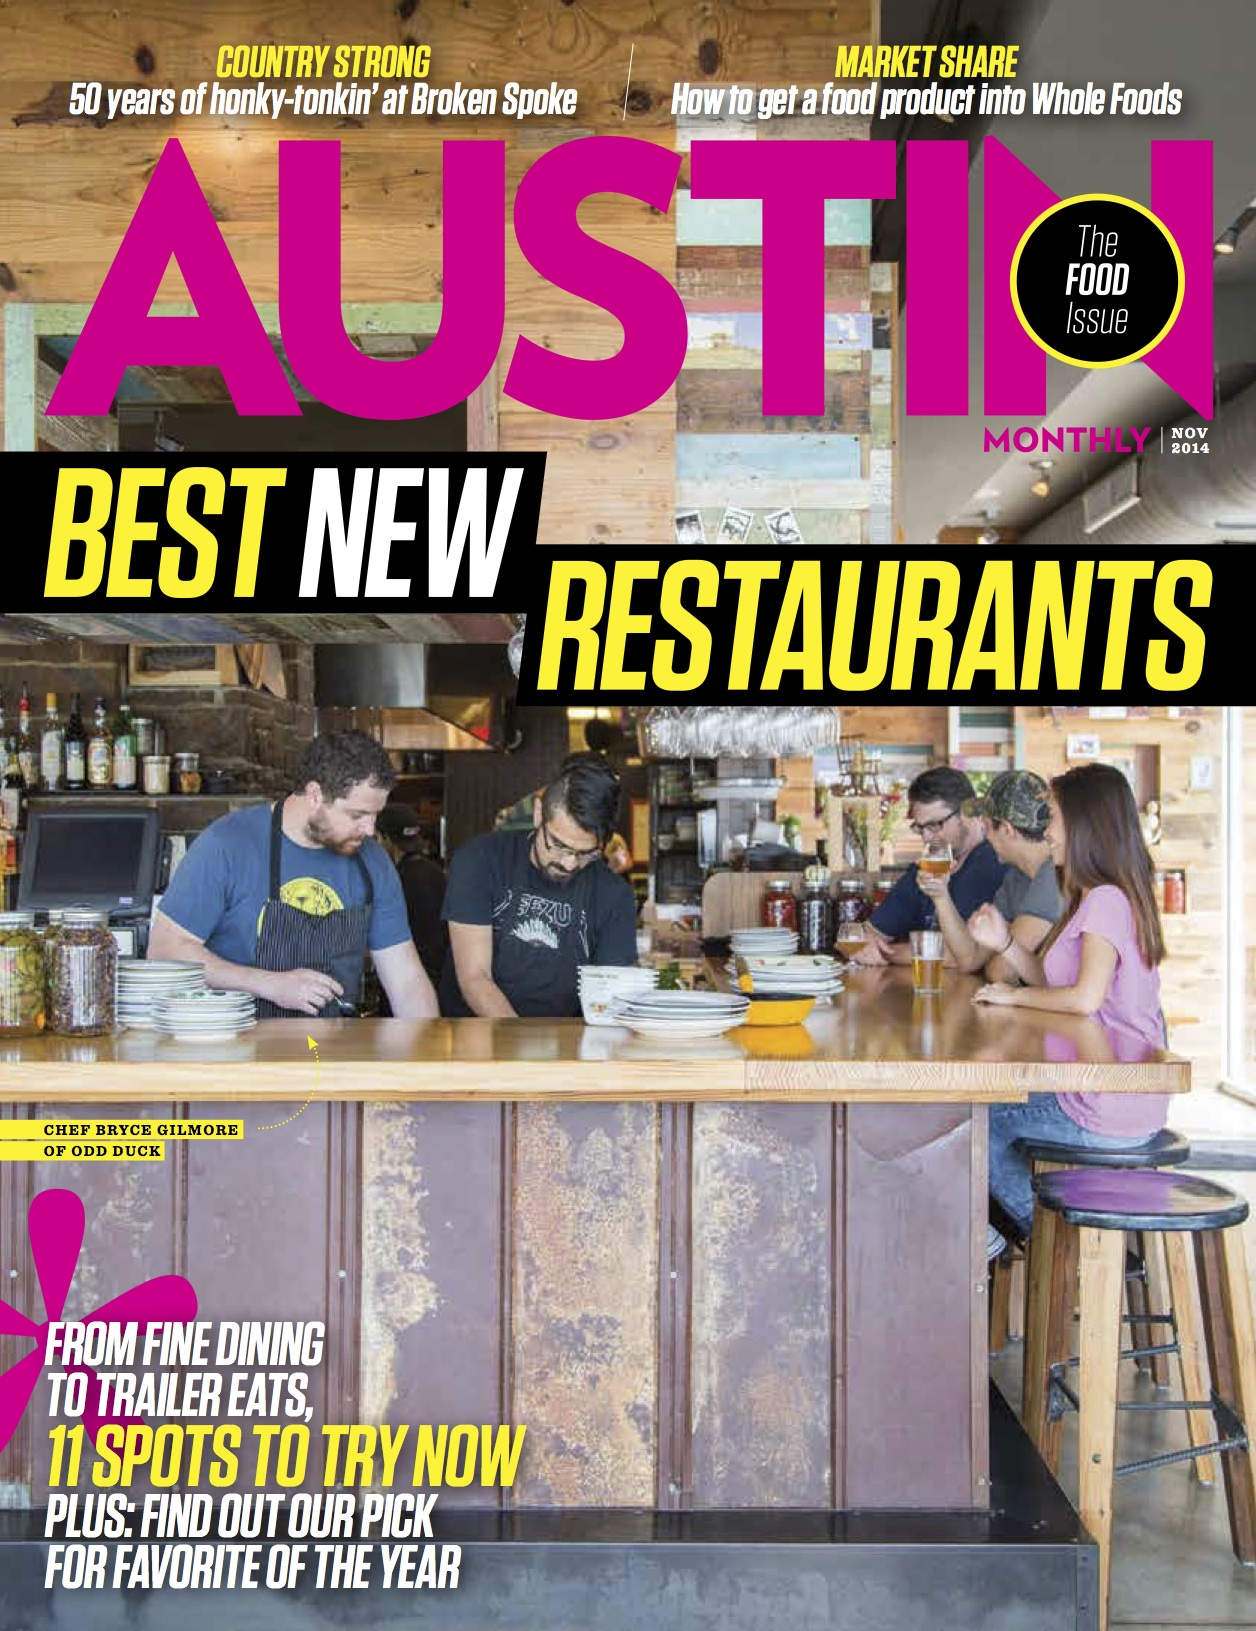 The Extraordinary 11: Best New Restaurants 2014    Austin Monthly,  Nov 2014